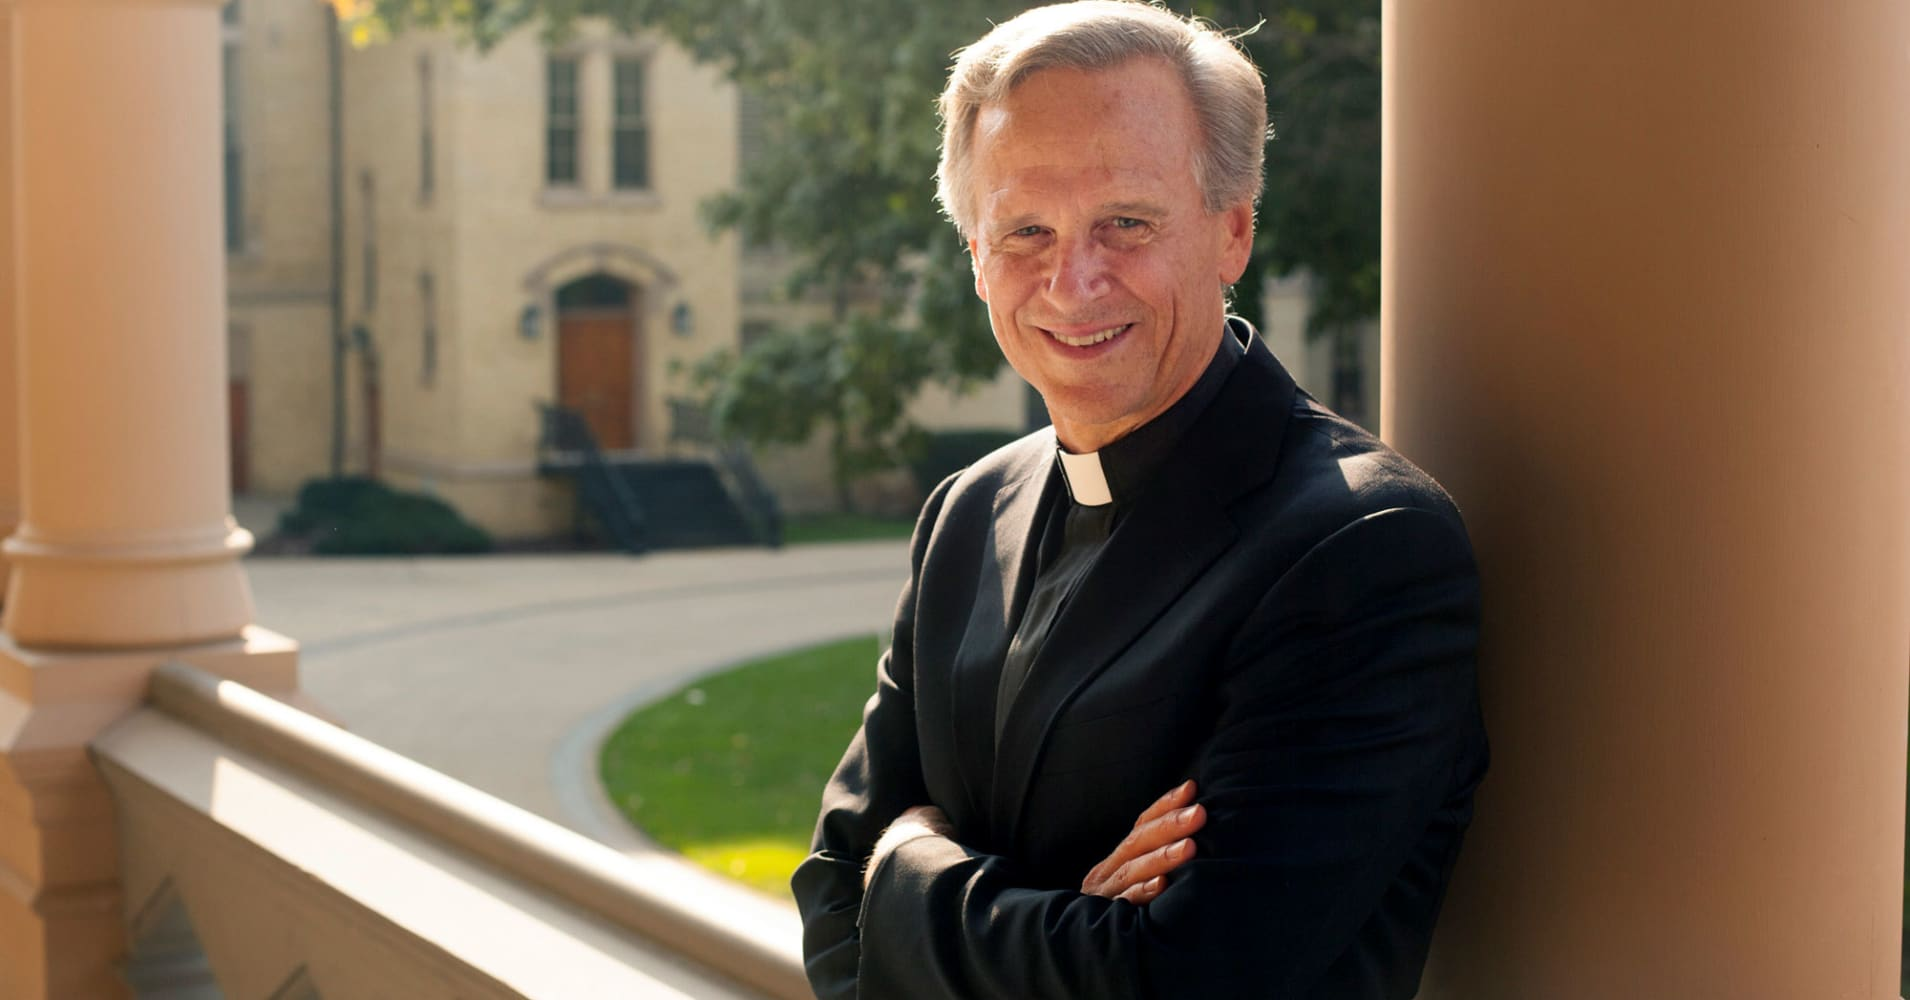 The Rev. John Jenkins, president of the University of Notre Dame, on campus in South Bend, Ind., Sept. 8, 2015.